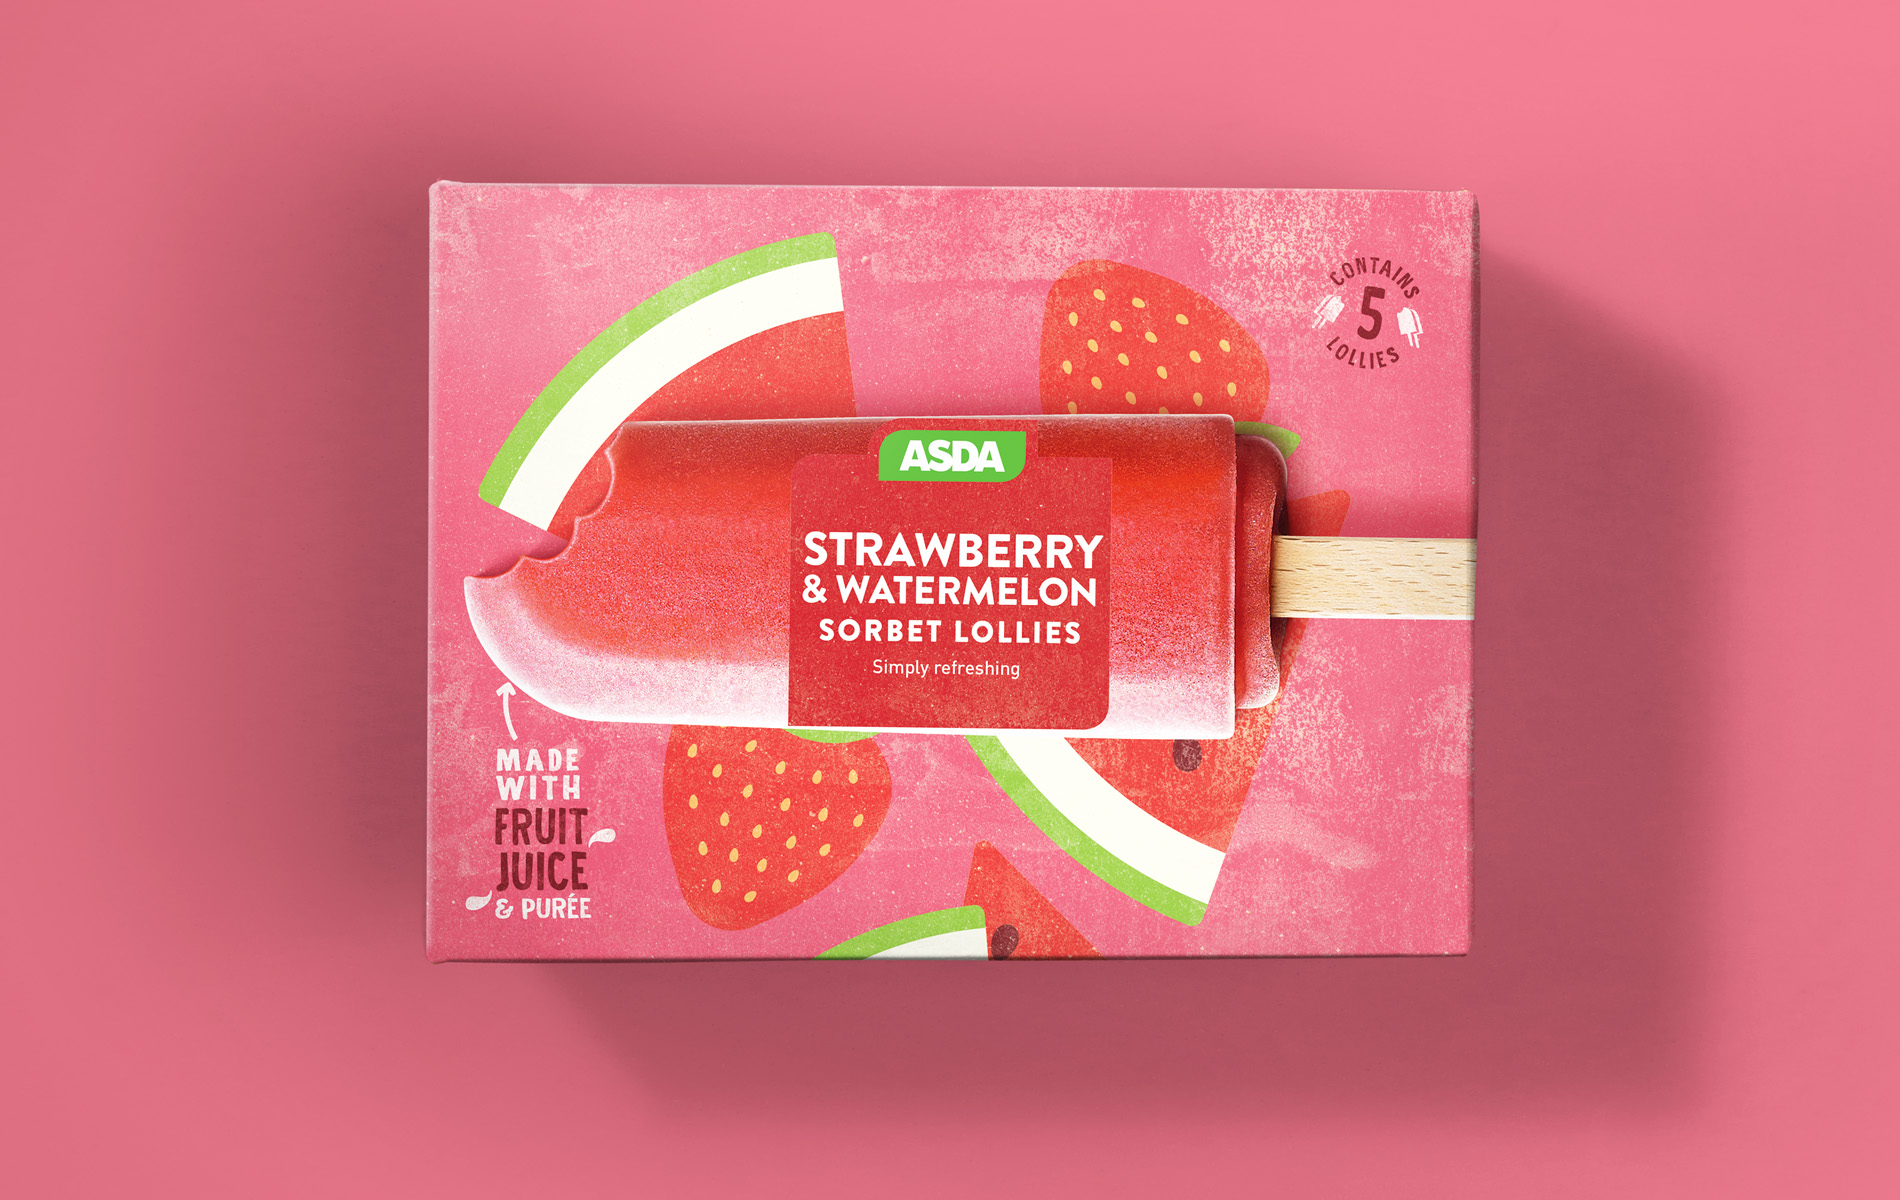 Packaging design of strawberry sorbet lollies